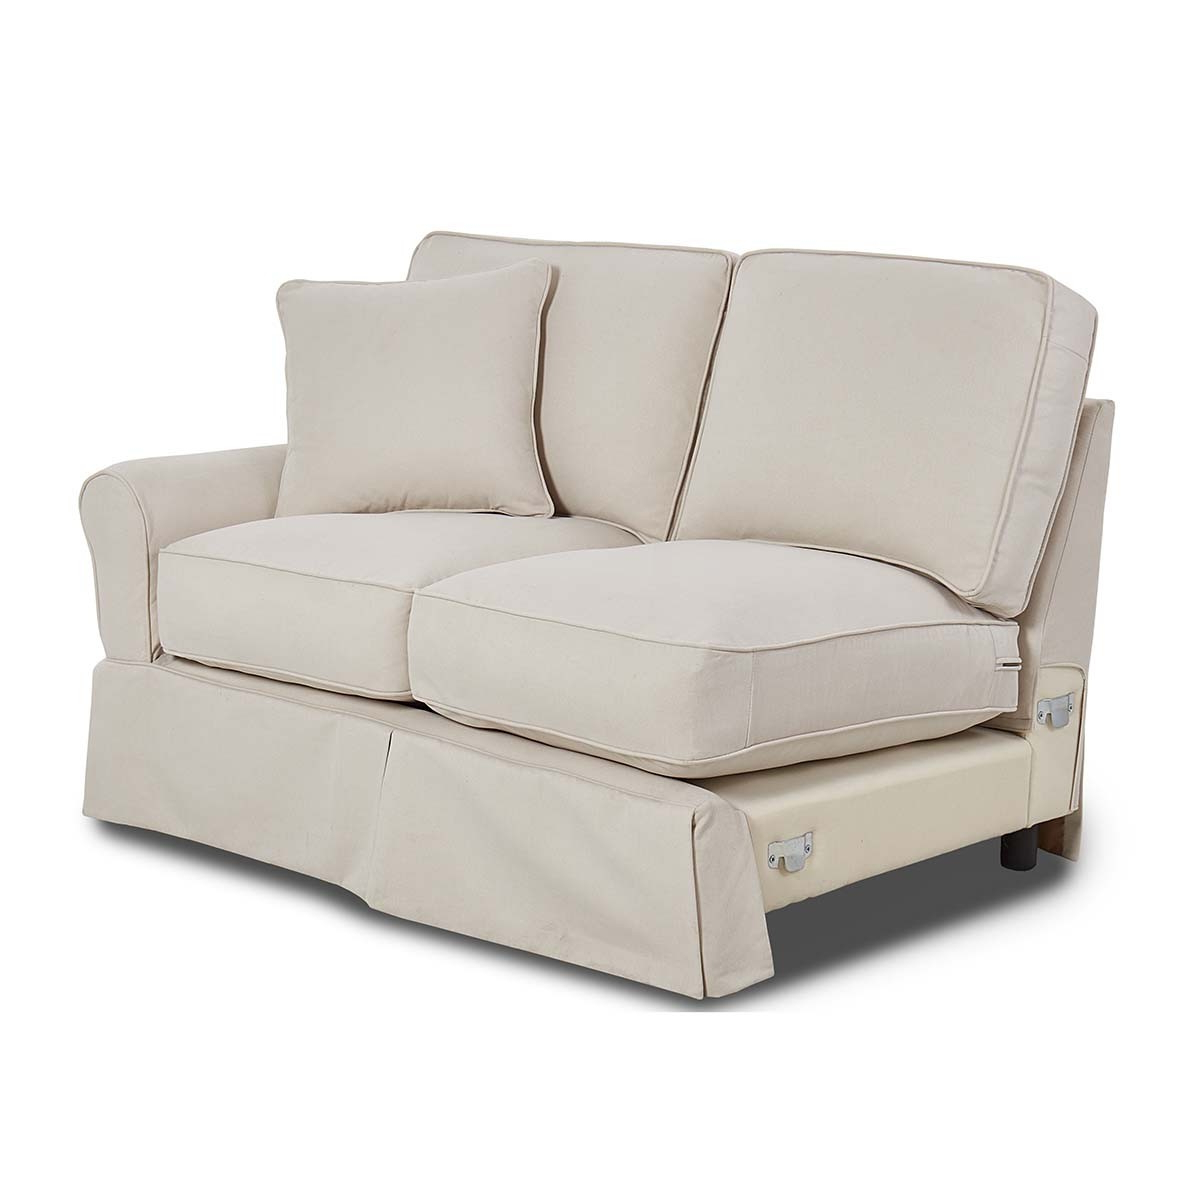 2019 Turdur 3 Piece Sectionals With Raf Loveseat Inside Knightsbridge Sectional (View 1 of 20)